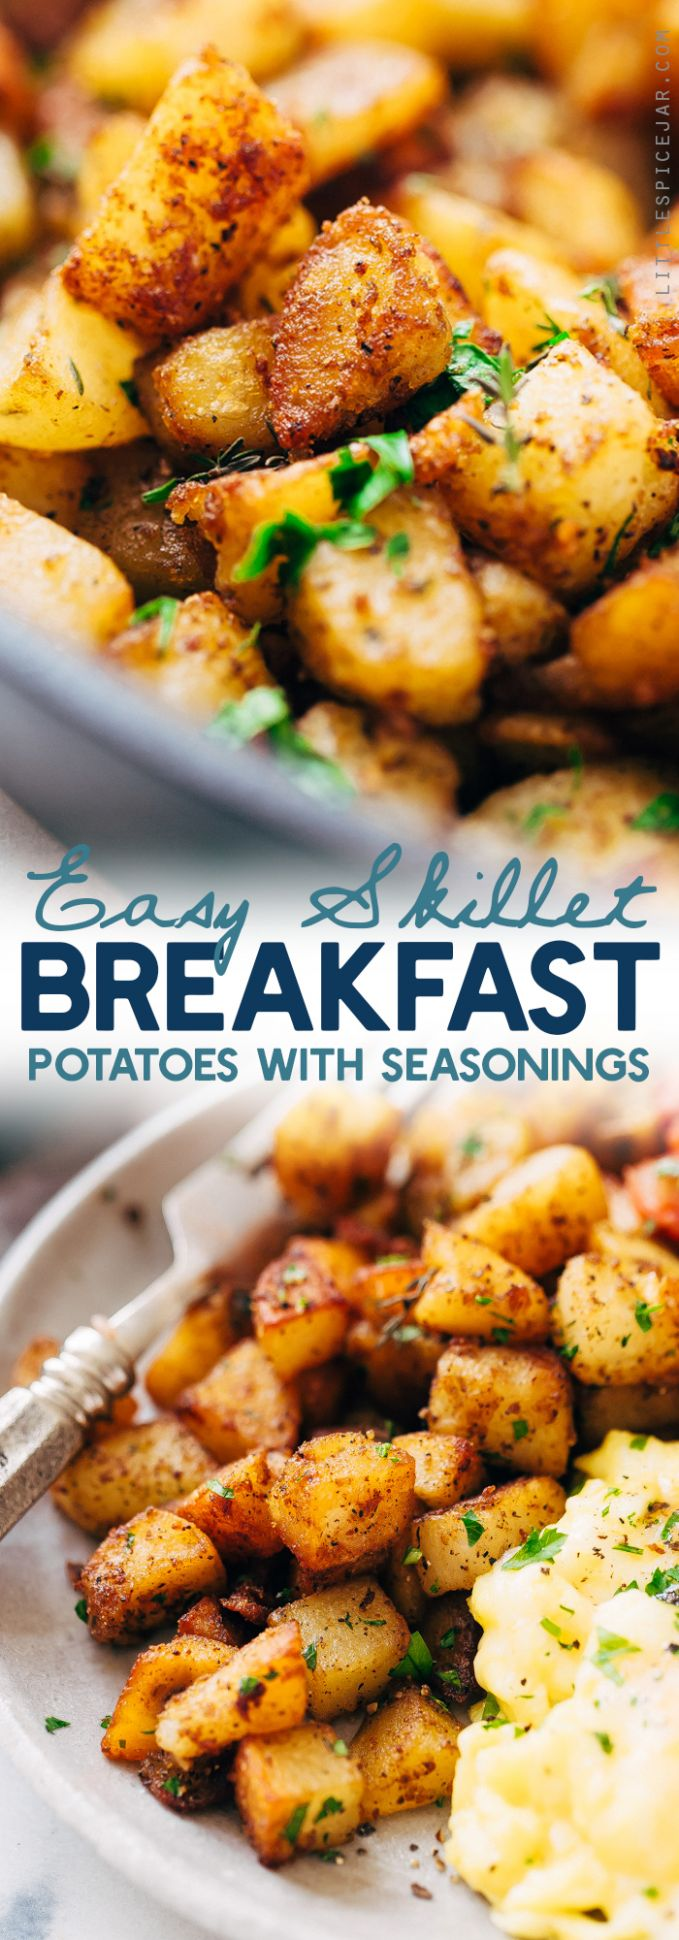 Easy Skillet Breakfast Potatoes - Breakfast Recipes Potatoes